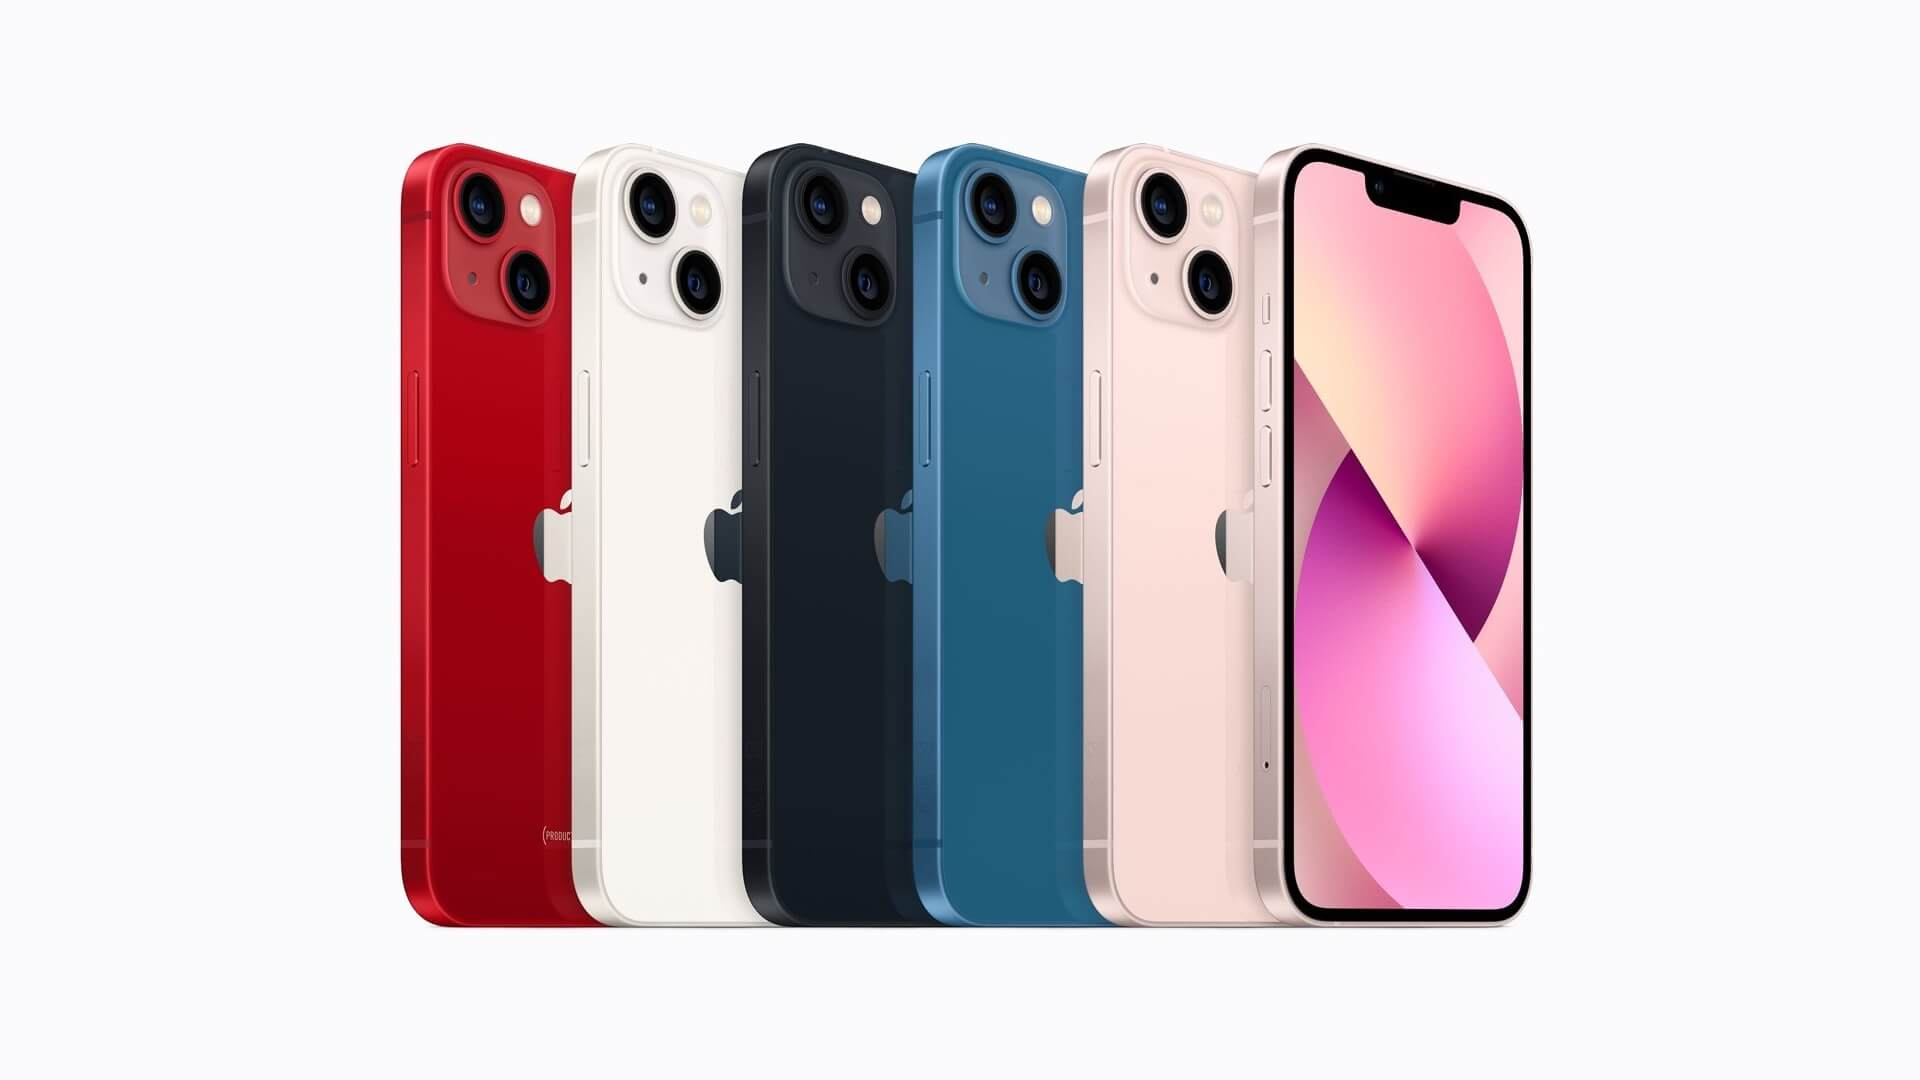 iPhone 13 All Colors